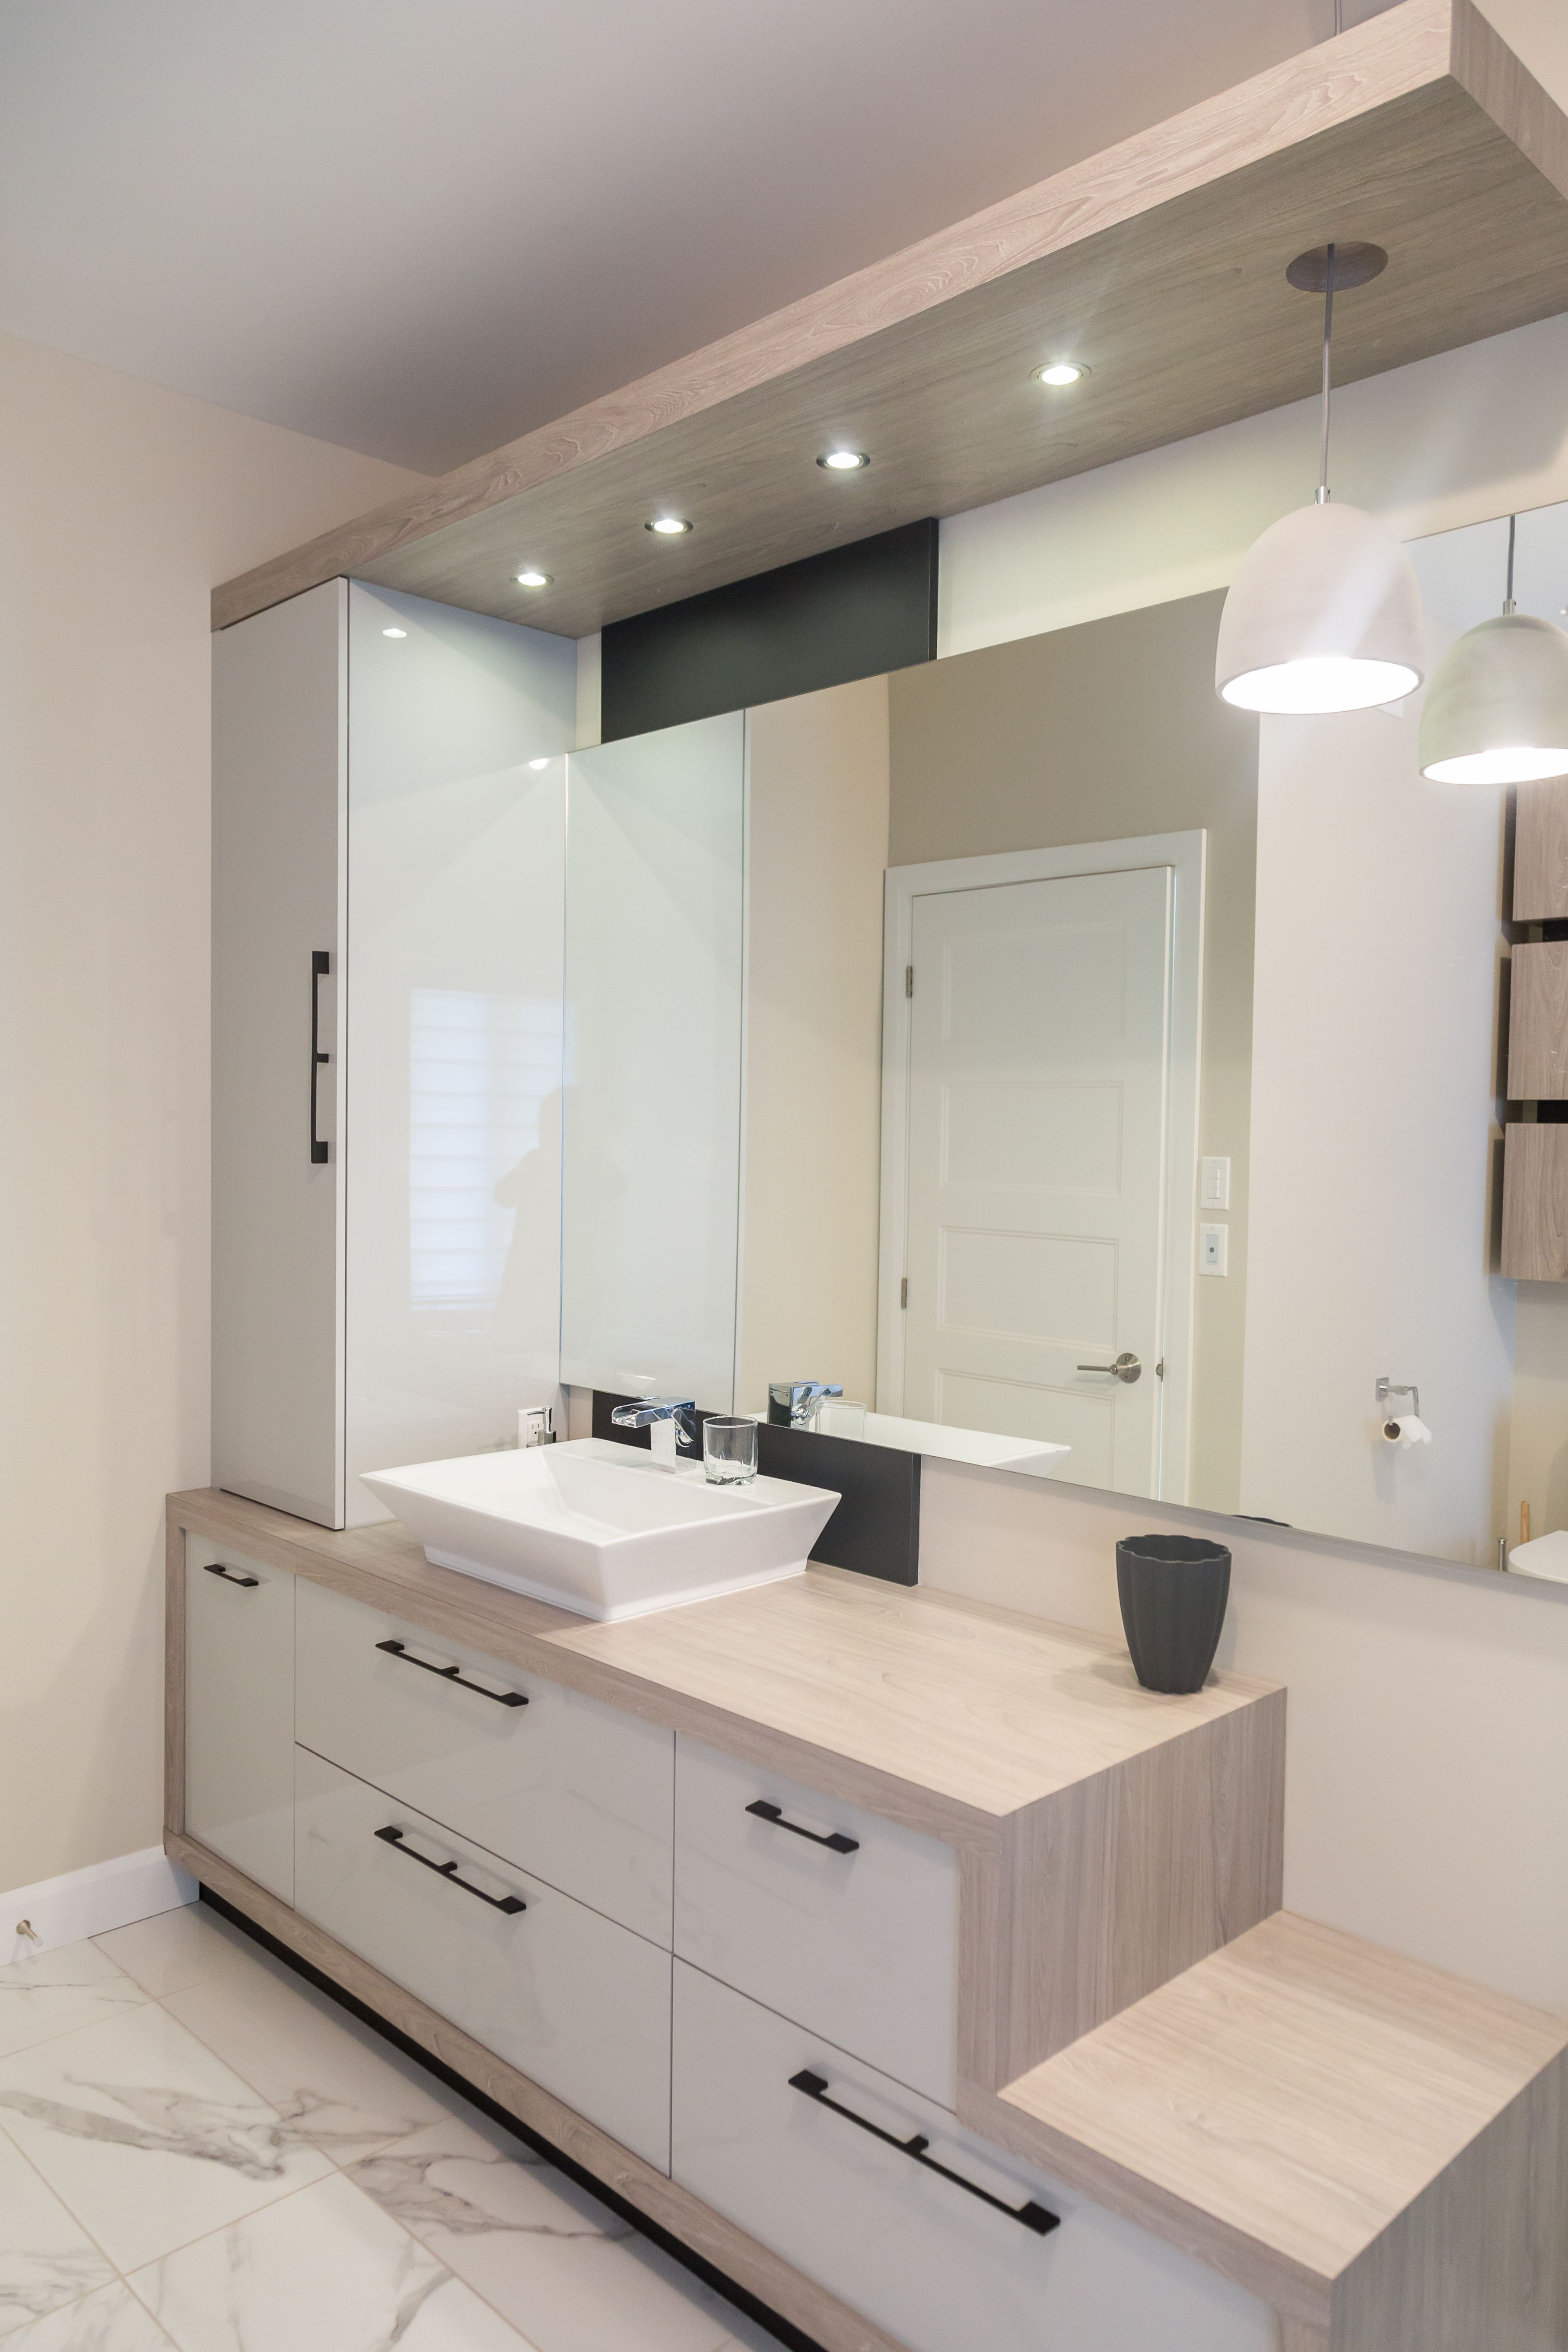 Genial Additional Vanity Storage Configuration. Neat Suspended Lighting Slab.  Bathroom Wall Cabinets, Basement Bathroom